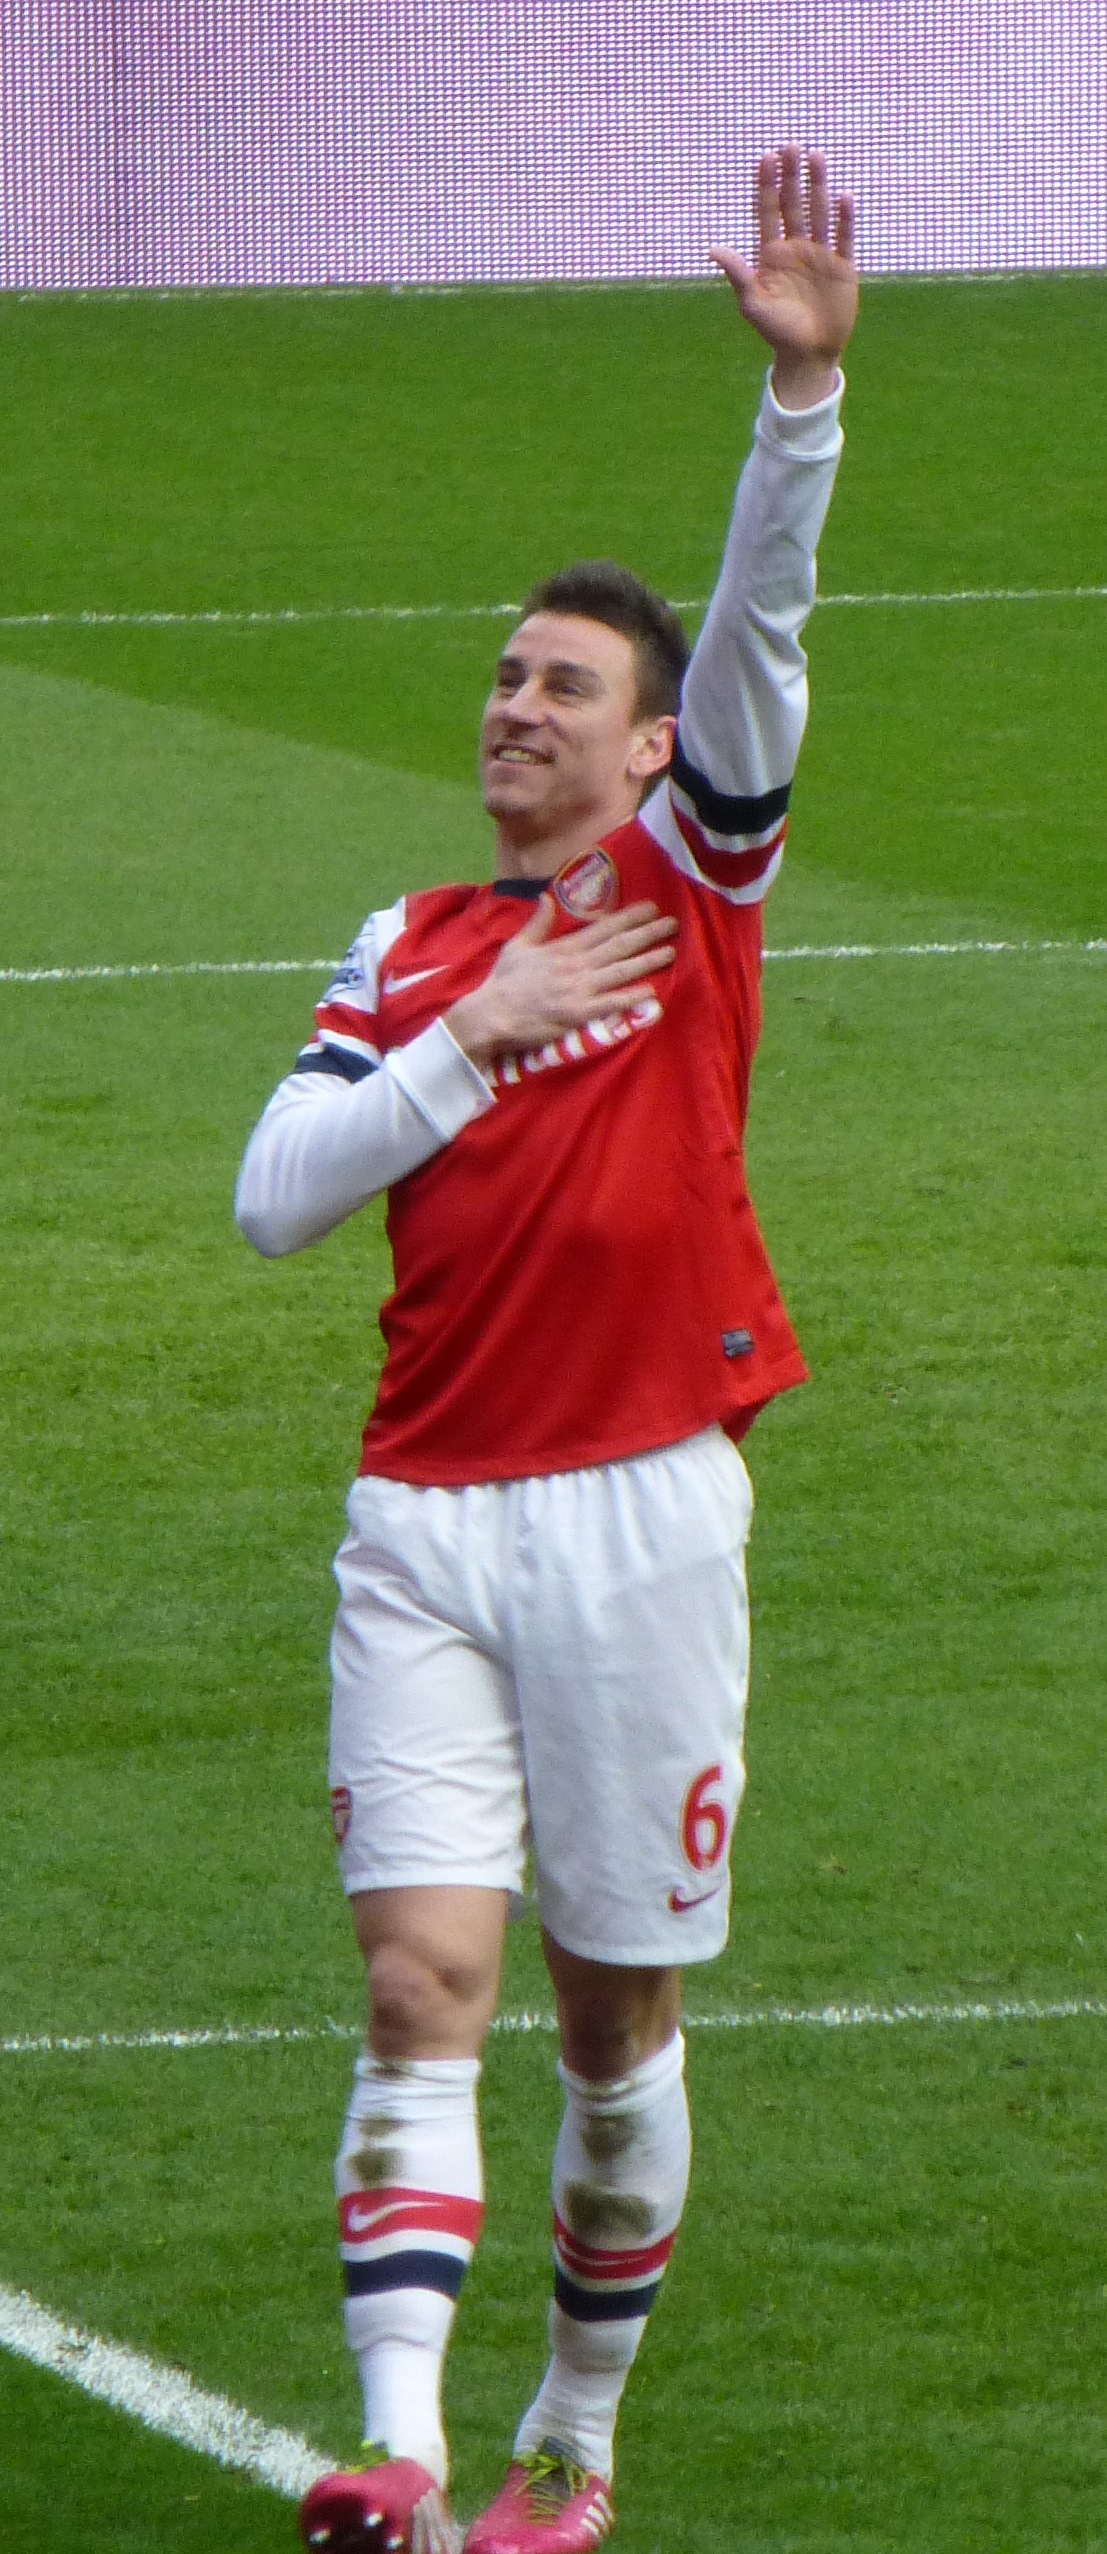 File Laurent Koscielny v Sunderland 22 Feb 2014 cropped